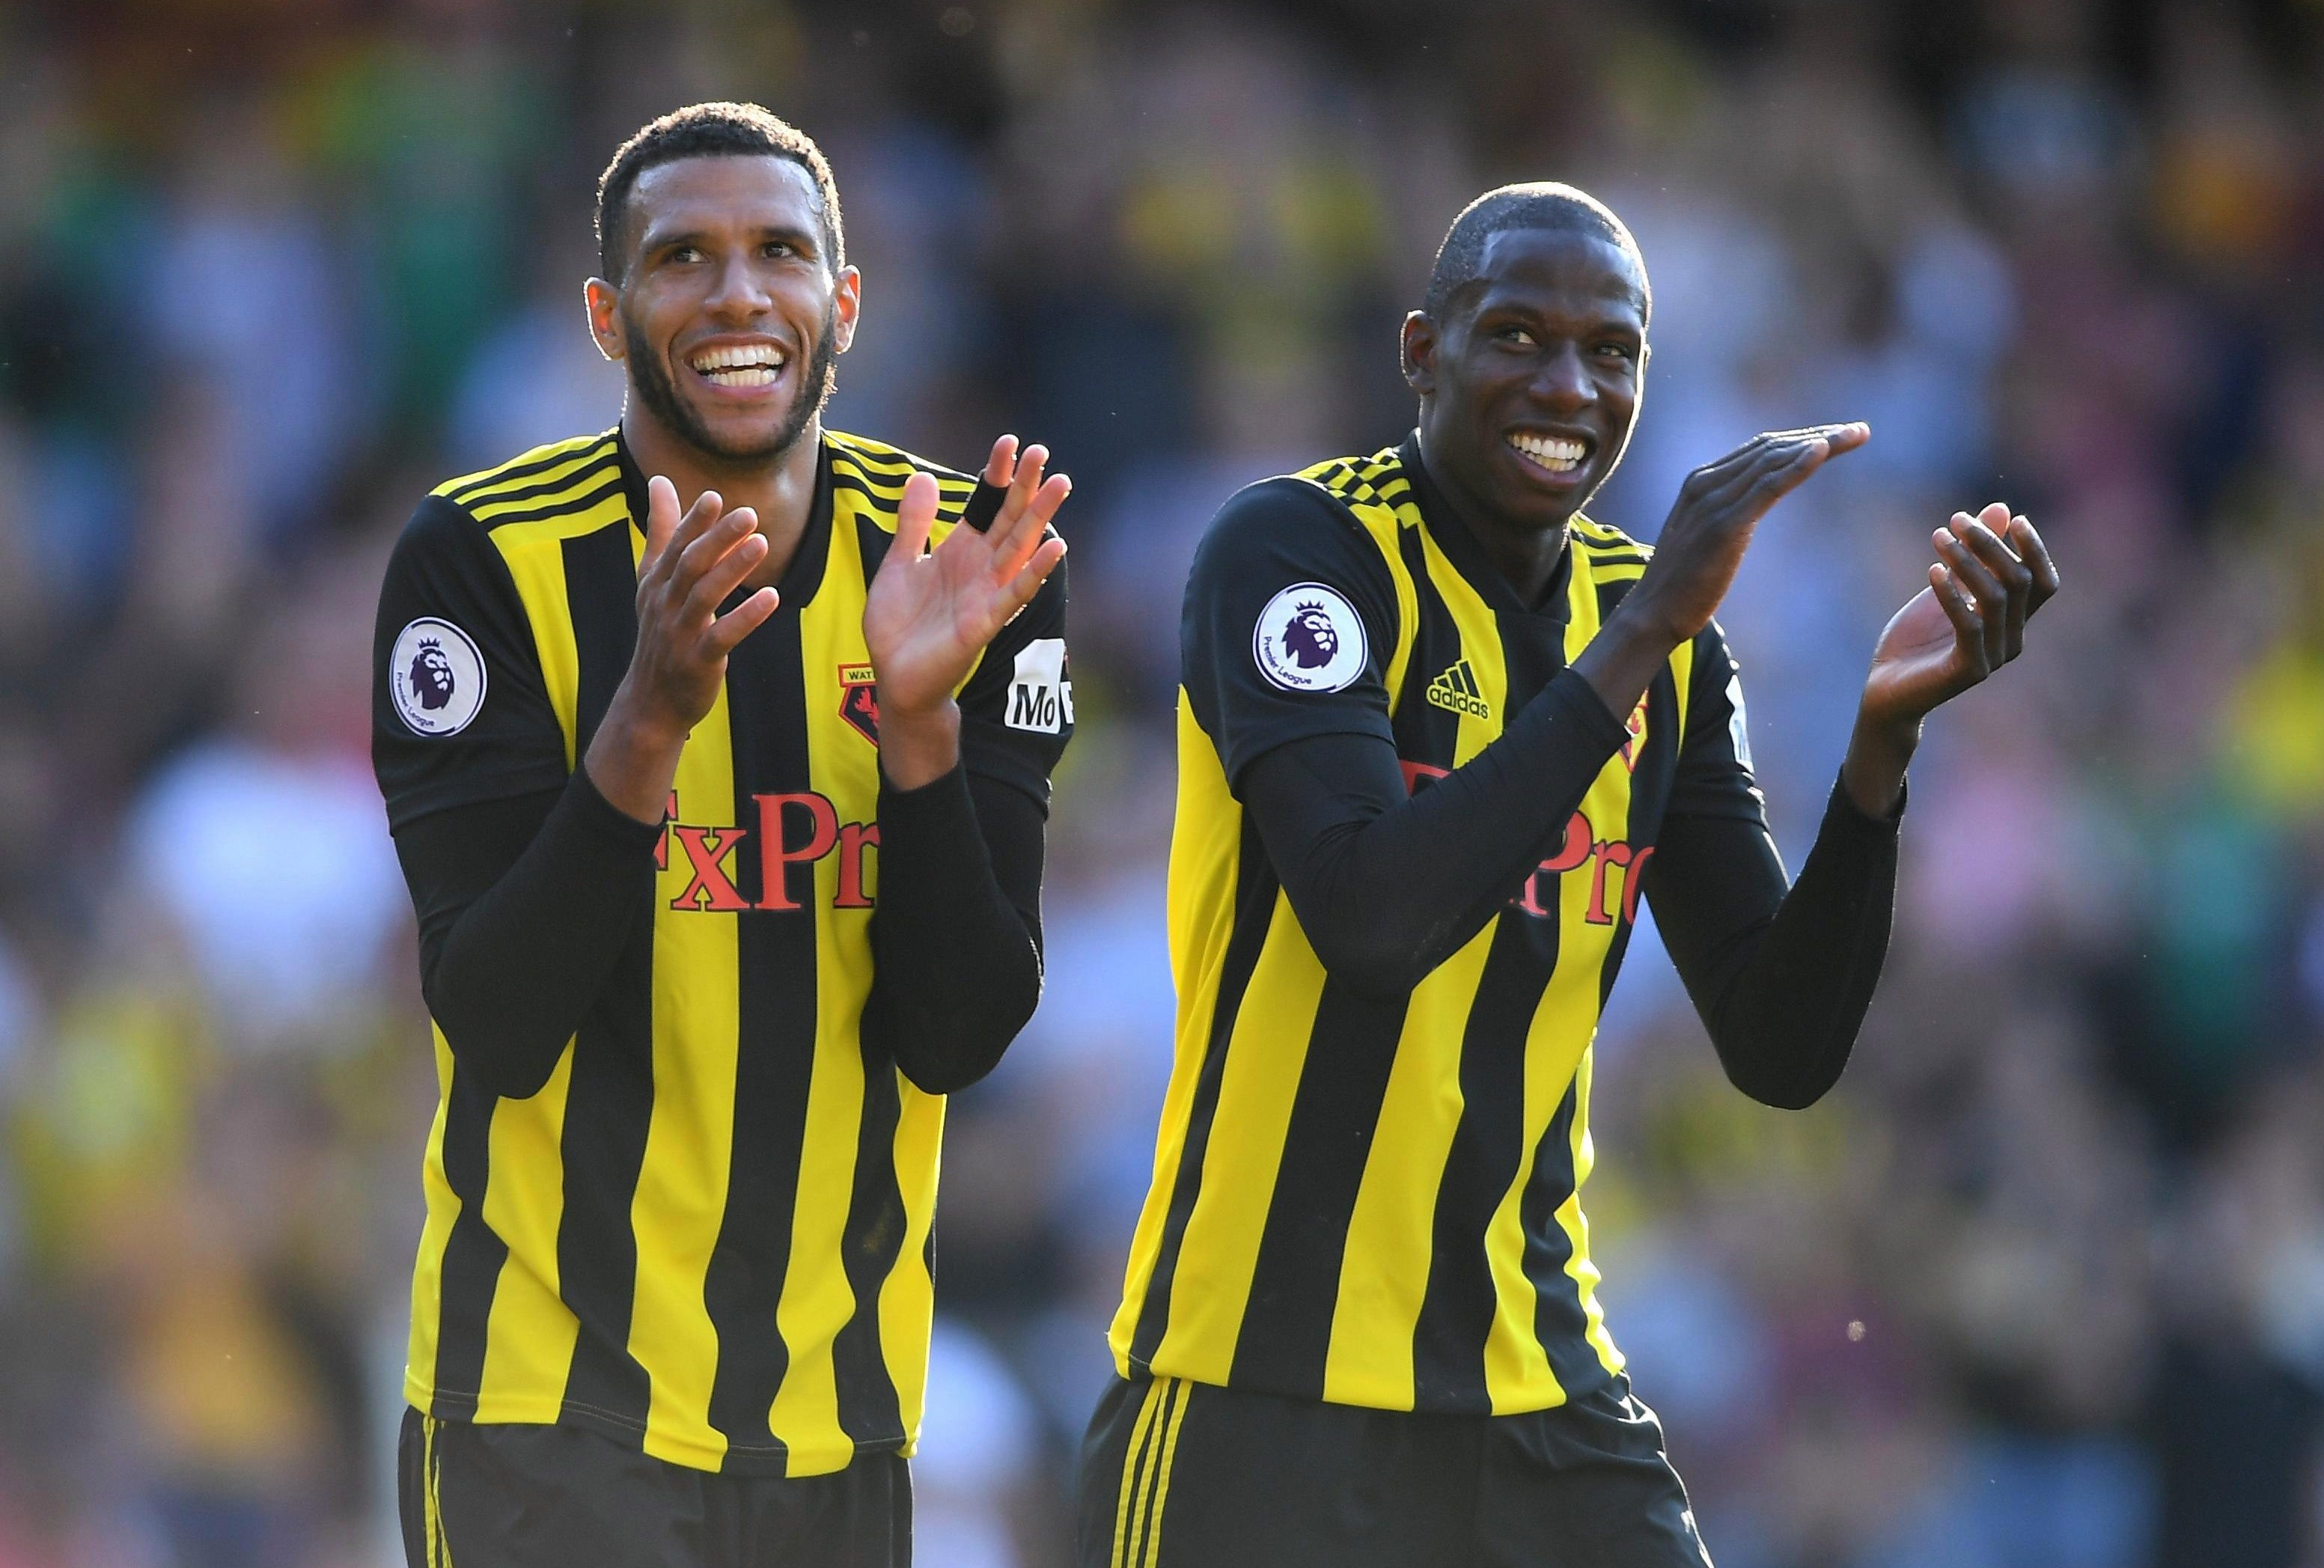 Only time will tell if Watford can keep their fine form going with Man Utd on the horizon